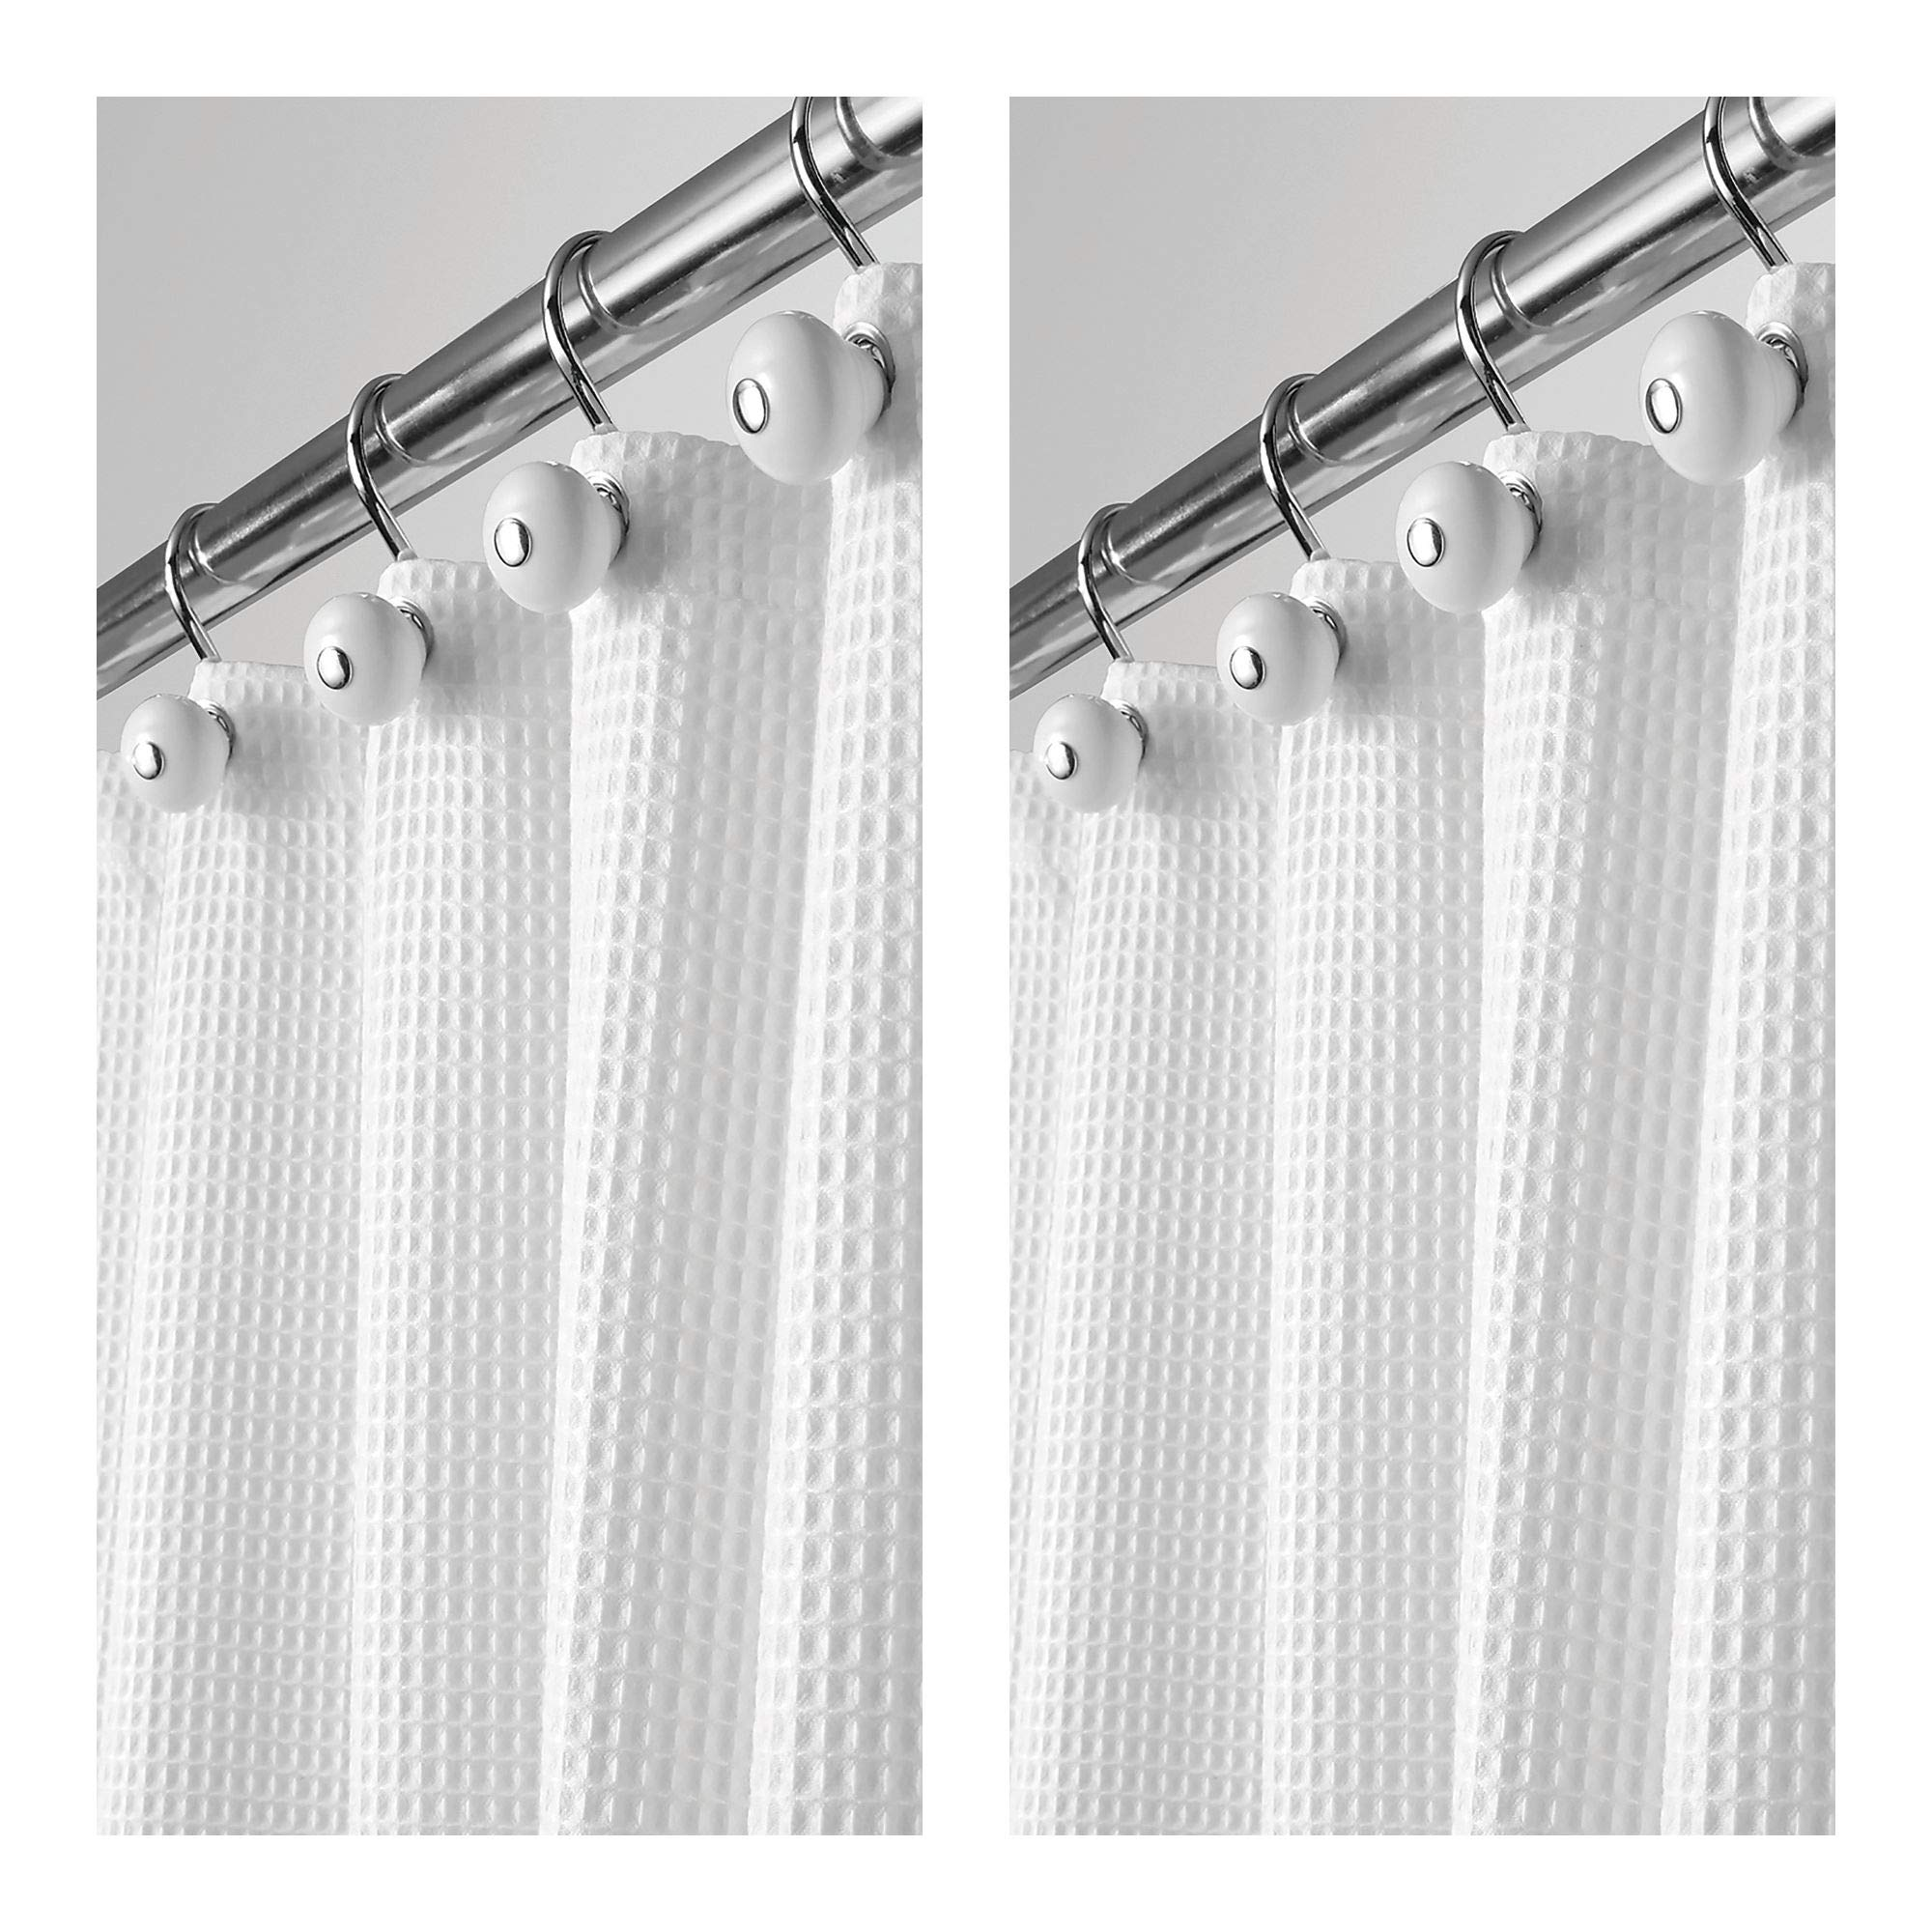 mDesign Hotel Quality Polyester/Cotton Blend Fabric Shower Curtain, Rustproof Metal Grommets - Waffle Weave for Bathroom Showers and Bathtubs - 72'' x 72'', Pack of 2, White